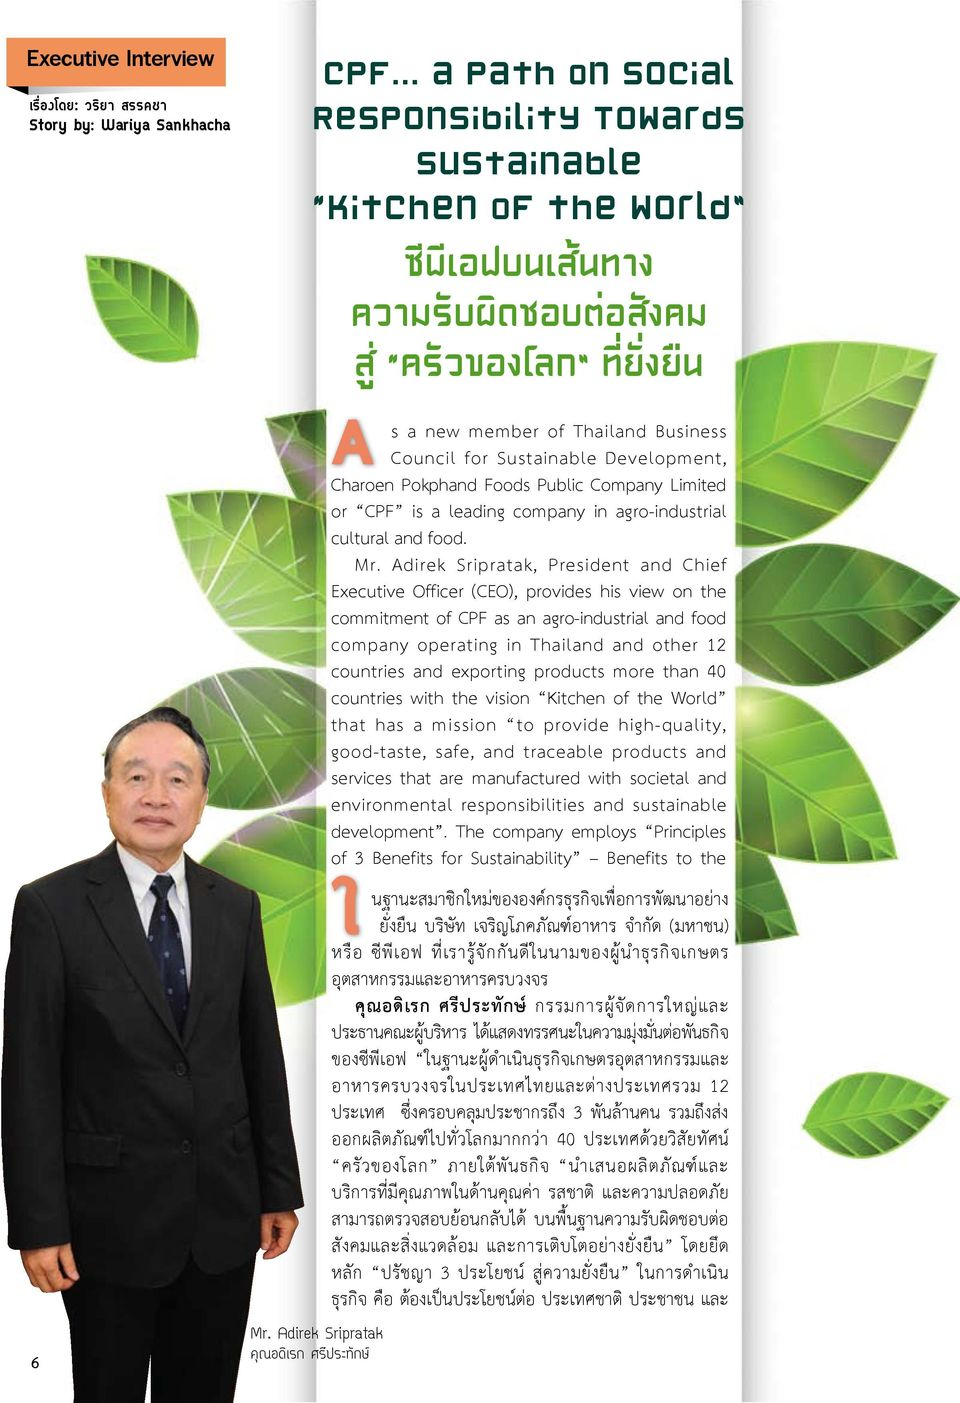 Development, Charoen Pokphand Foods Public Company Limited or CPF is a leading company in agro-industrial cultural and food. Mr.